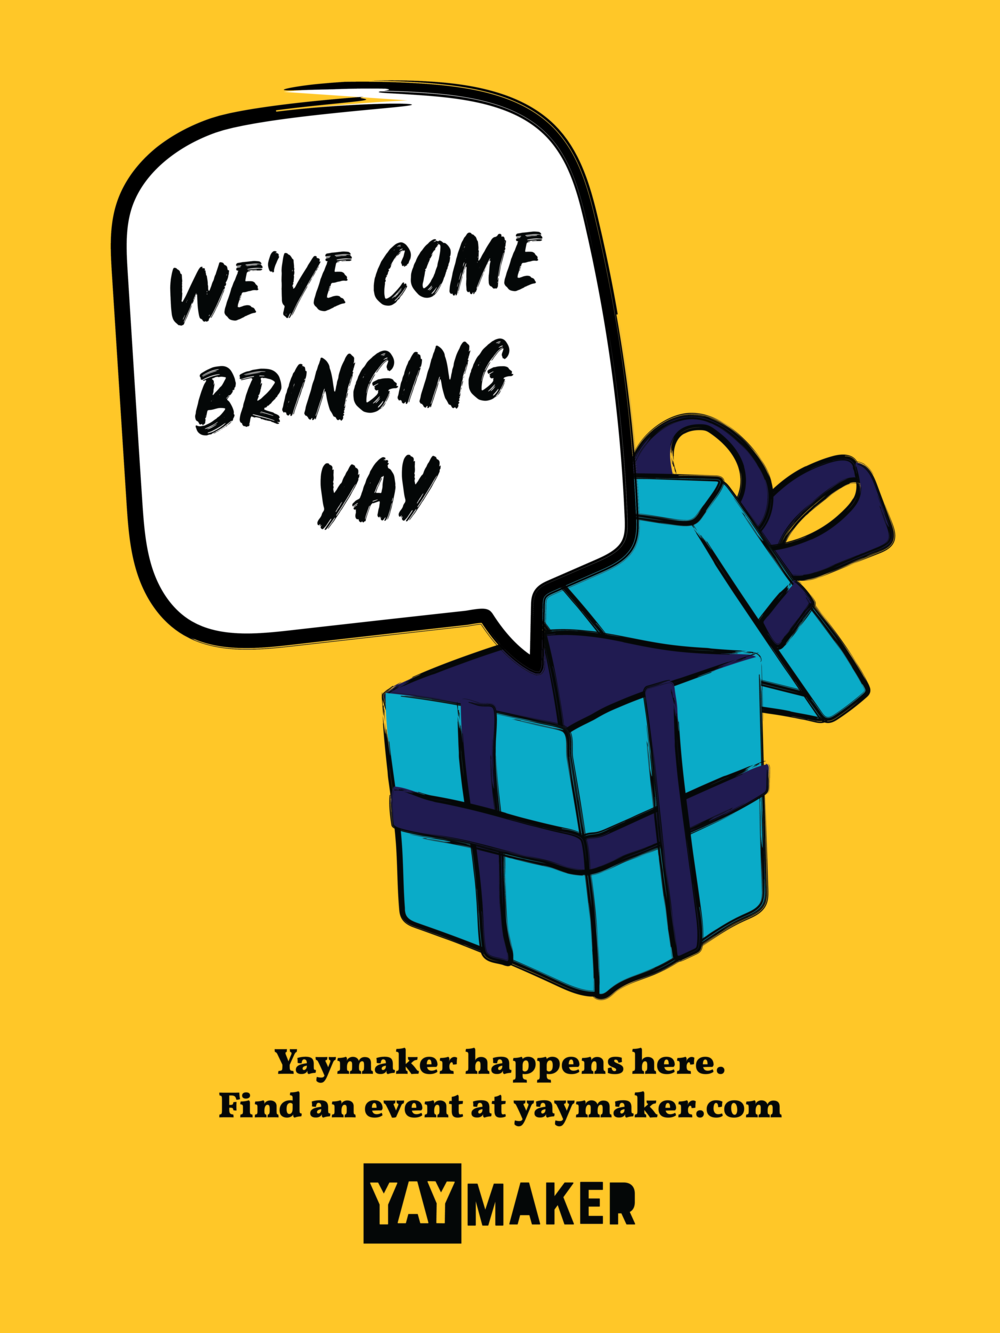 Yaymaker_Poster_We've Come2.png